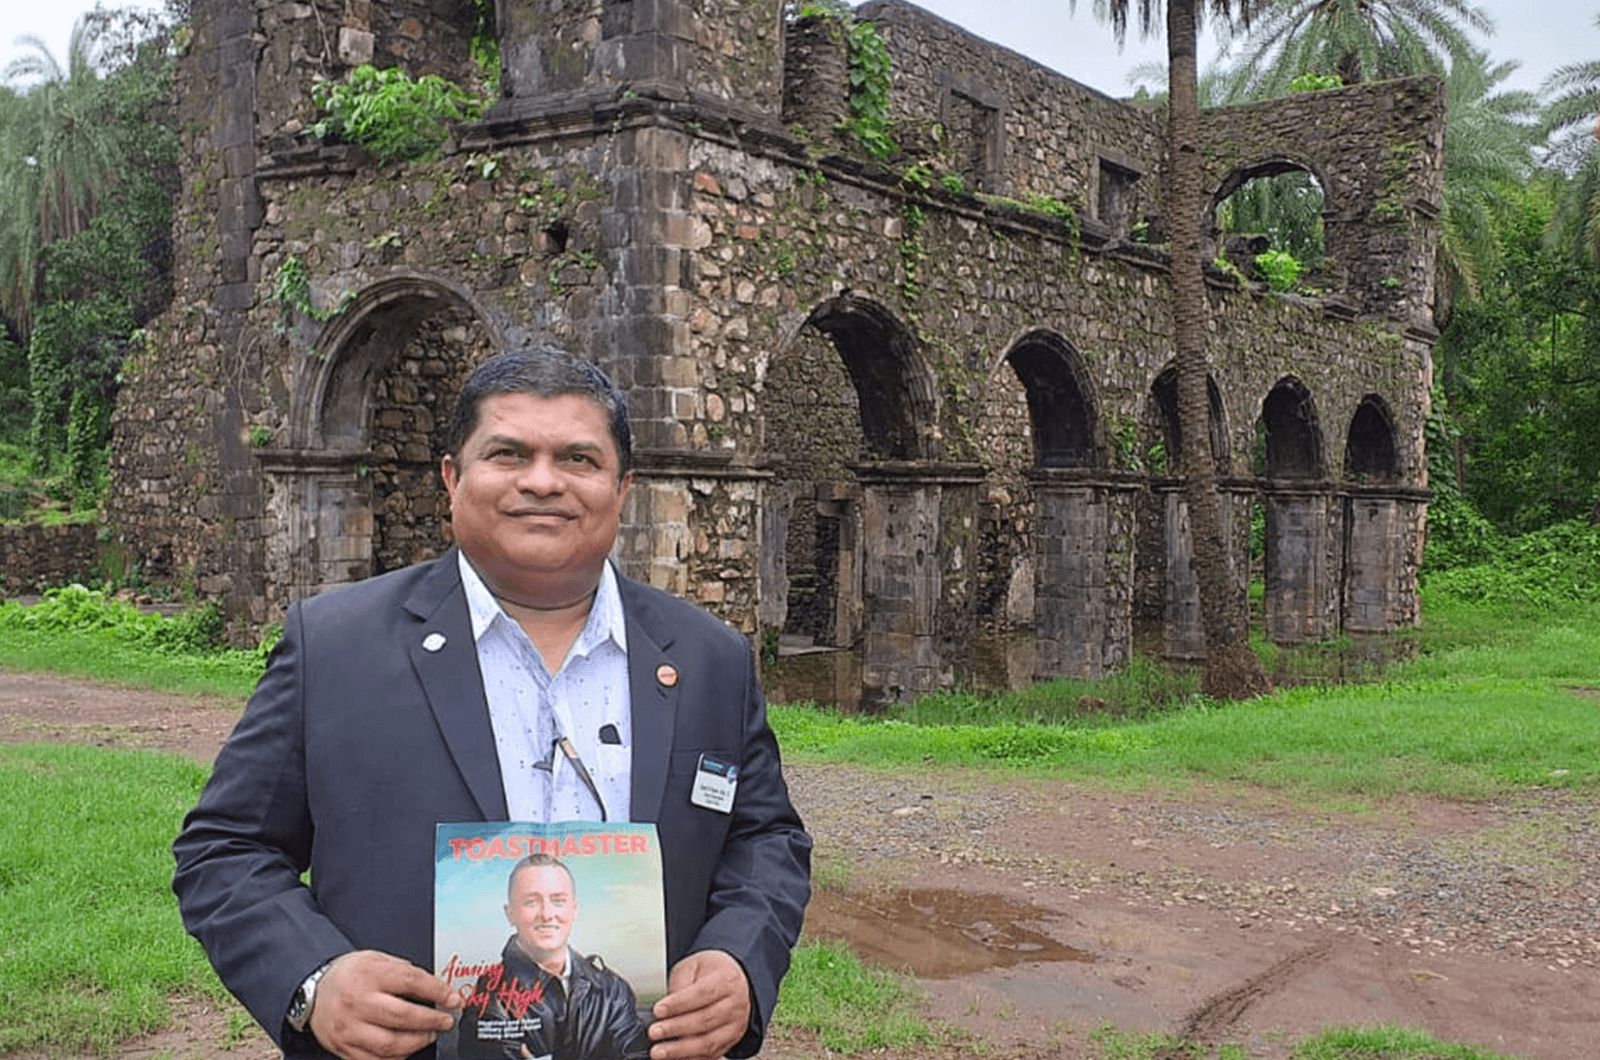 Ubedur Rehman Shaikh, of Jubail, Saudi Arabia, stands in front of Vasai Fort in Vasai, India, also known as Fort Bassein, and protected by the Archaeological Survey of India.